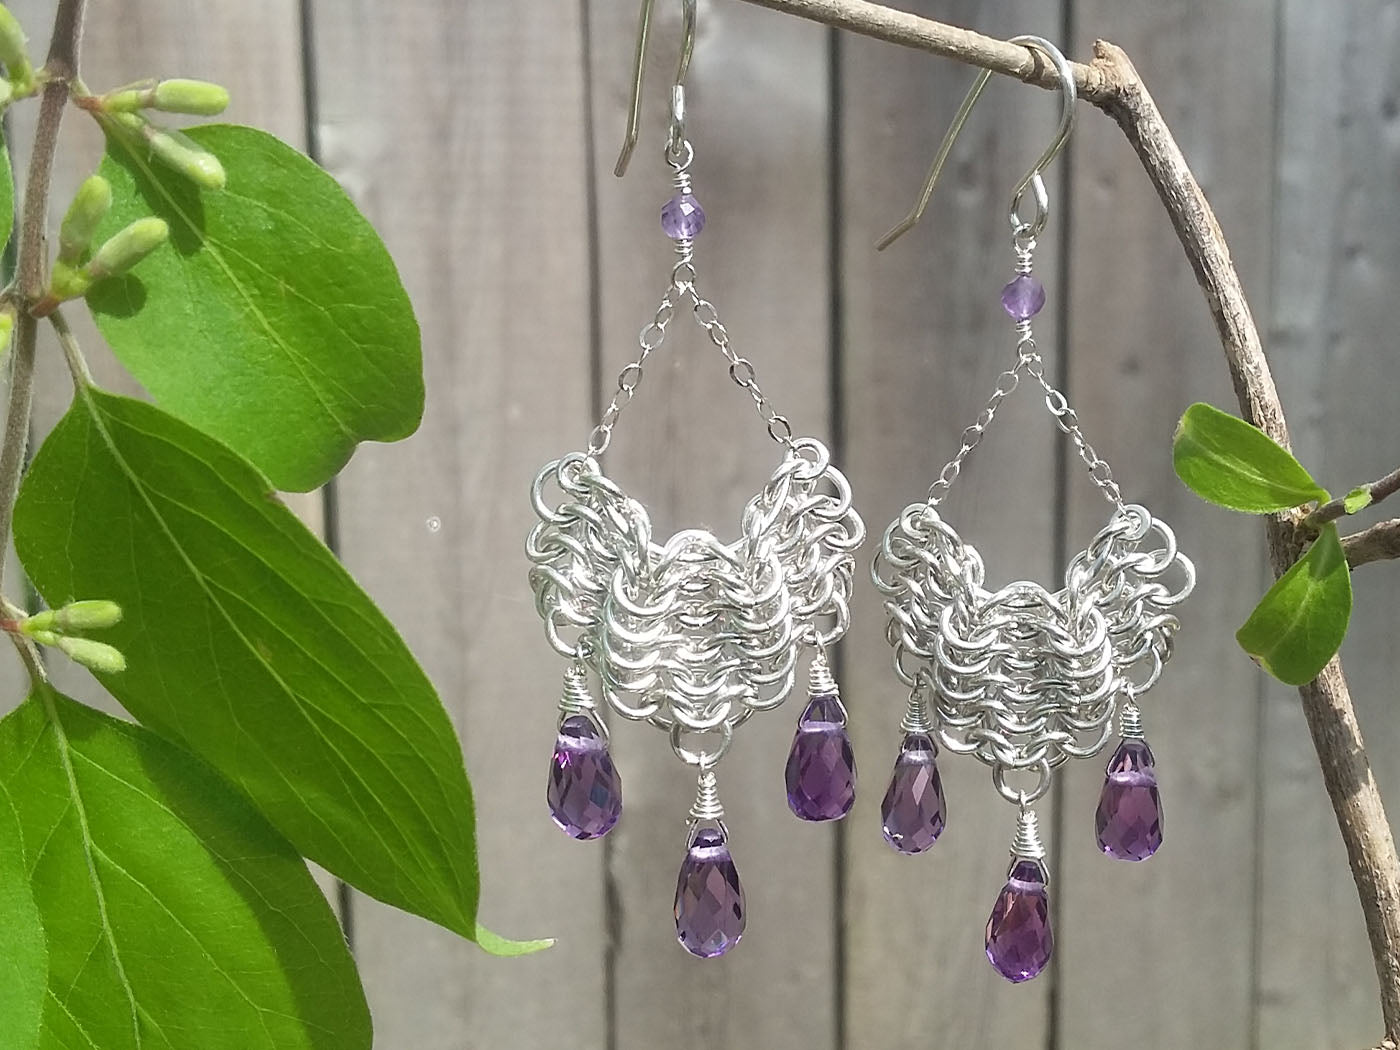 Amethyst Sterling Silver Draped Earrings - crystalsbysabeads.com